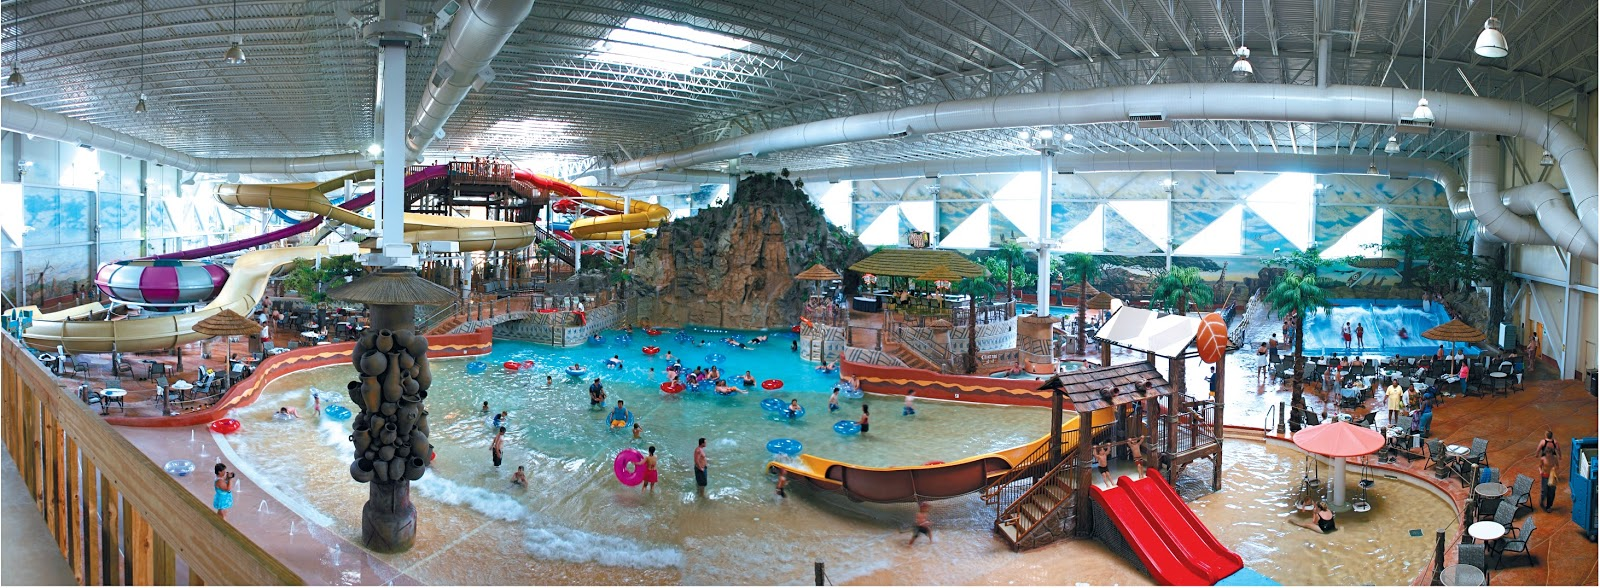 Winter Fun at Kalahari